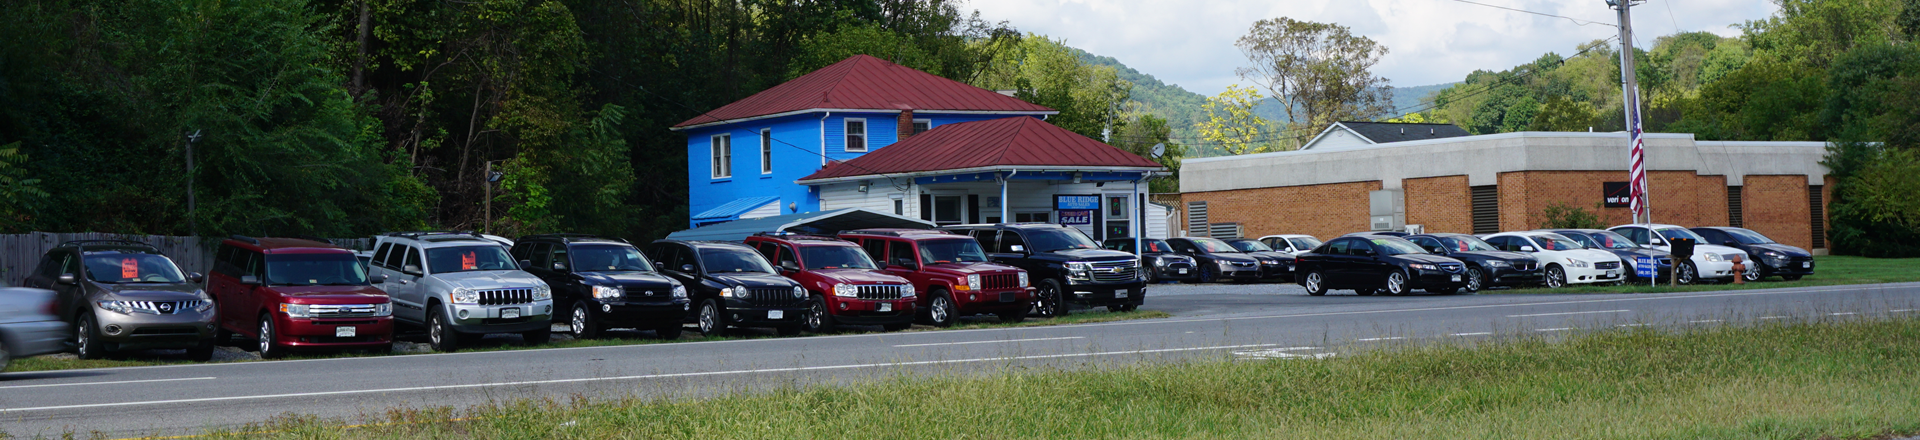 Used Cars Roanoke VA | Used Cars & Trucks VA | Blue Ridge Auto Sales